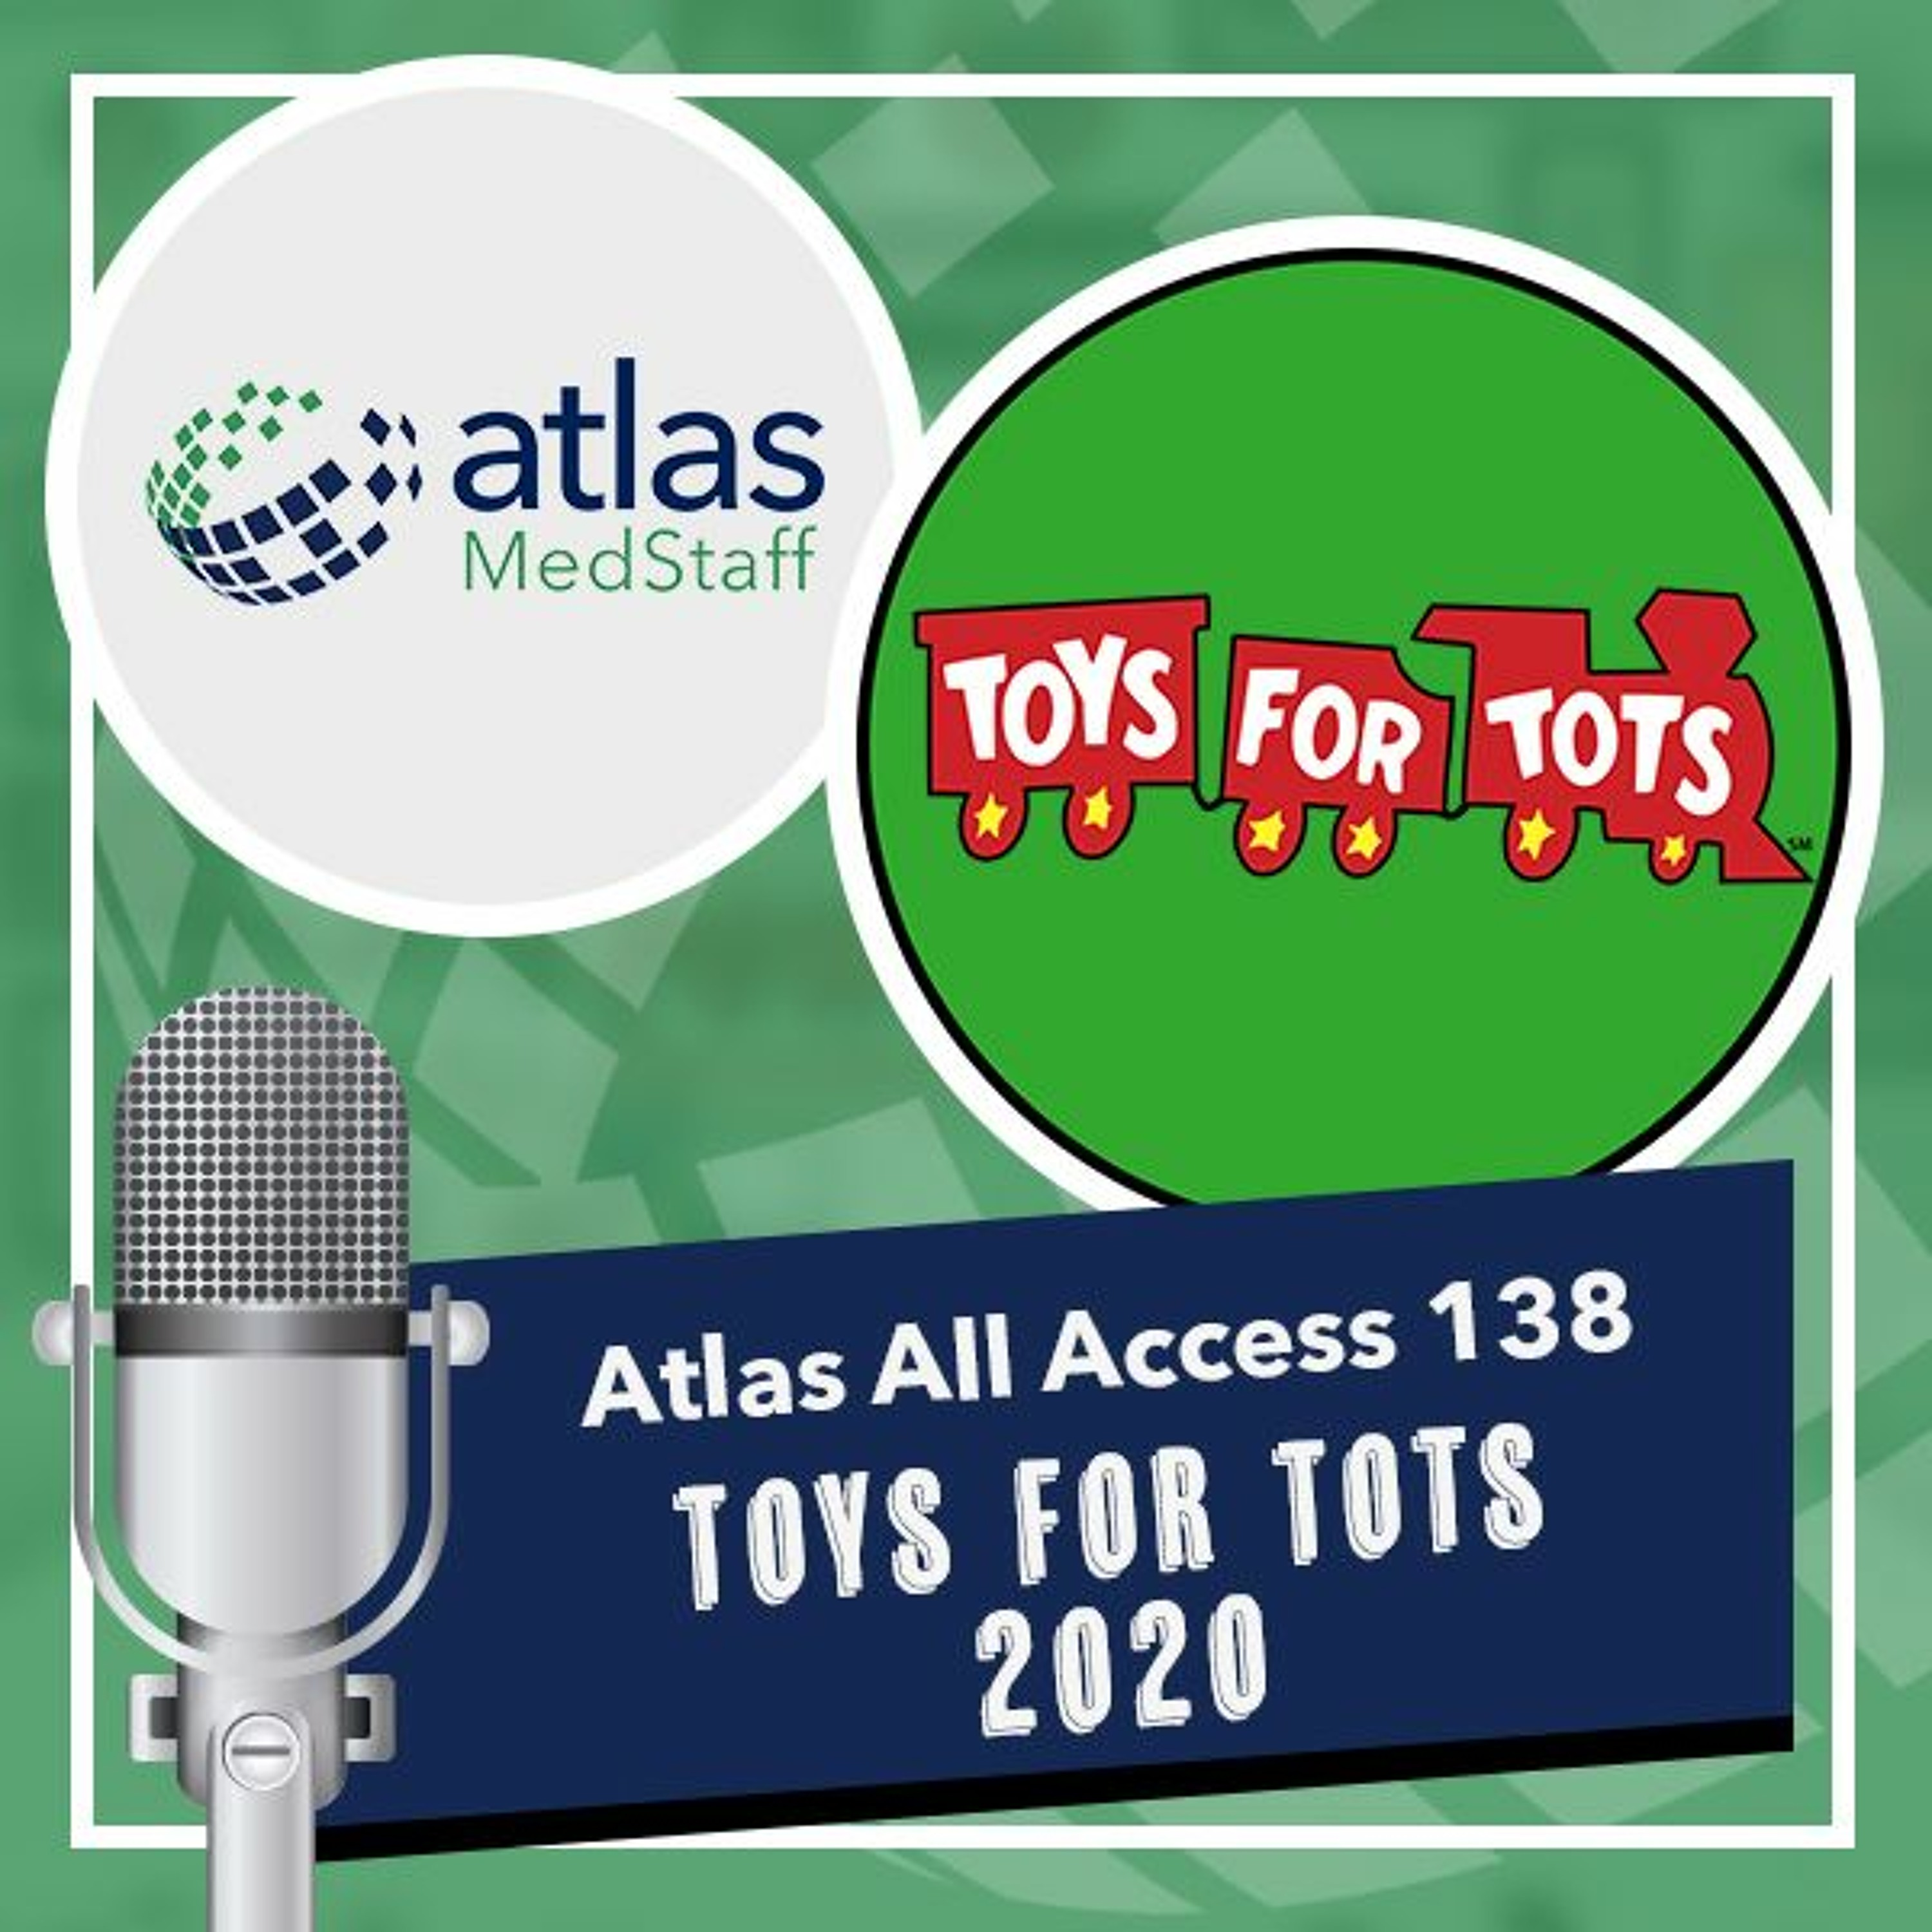 Travel nurses donate 2,000+ toys for Toys for Tots - Atlas All Access 138 - travel nurse podcast